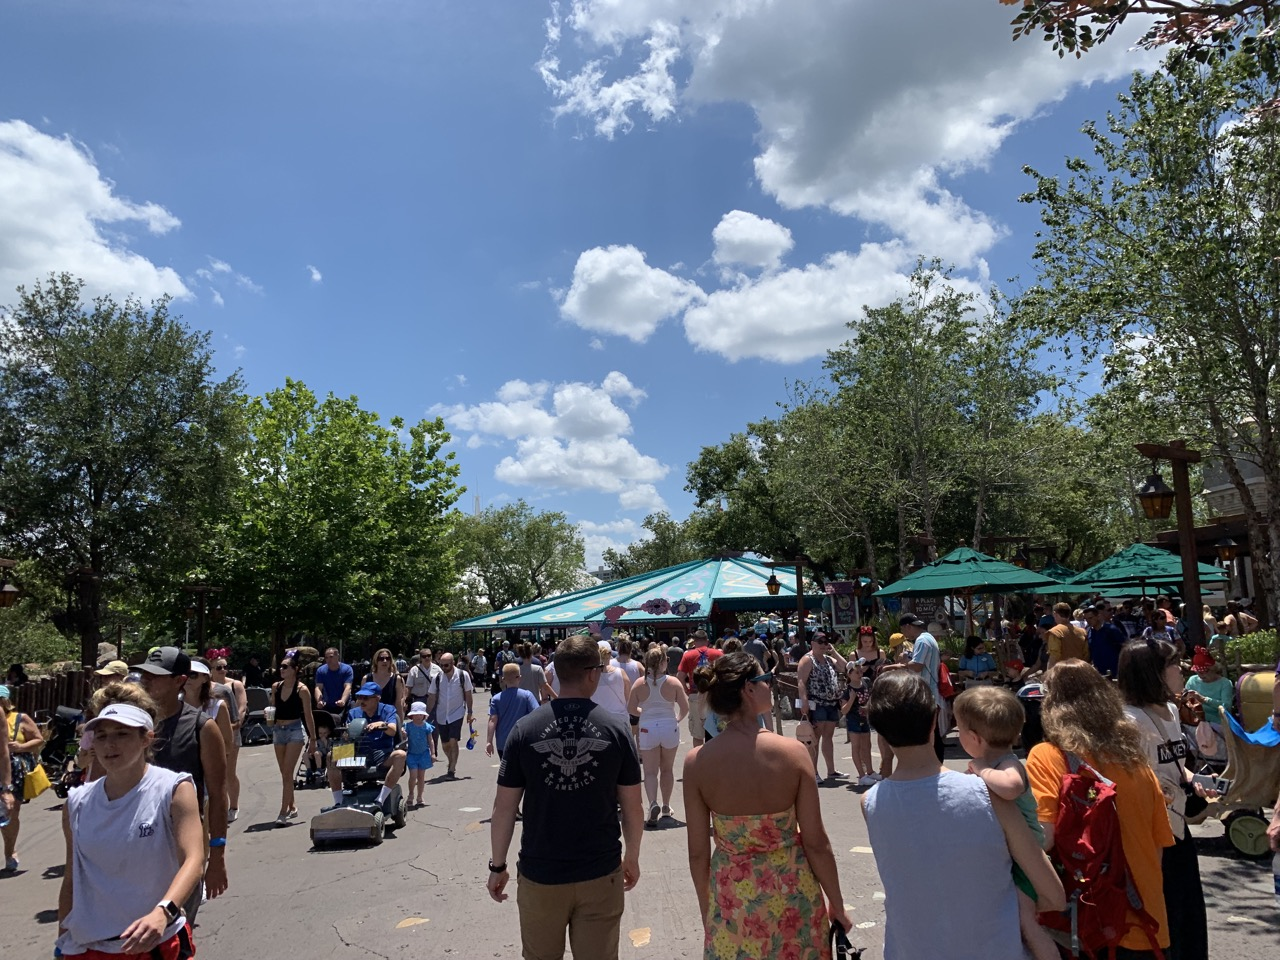 disney world trip report early summer 2019 day five 44 fantasyland crowds.jpeg